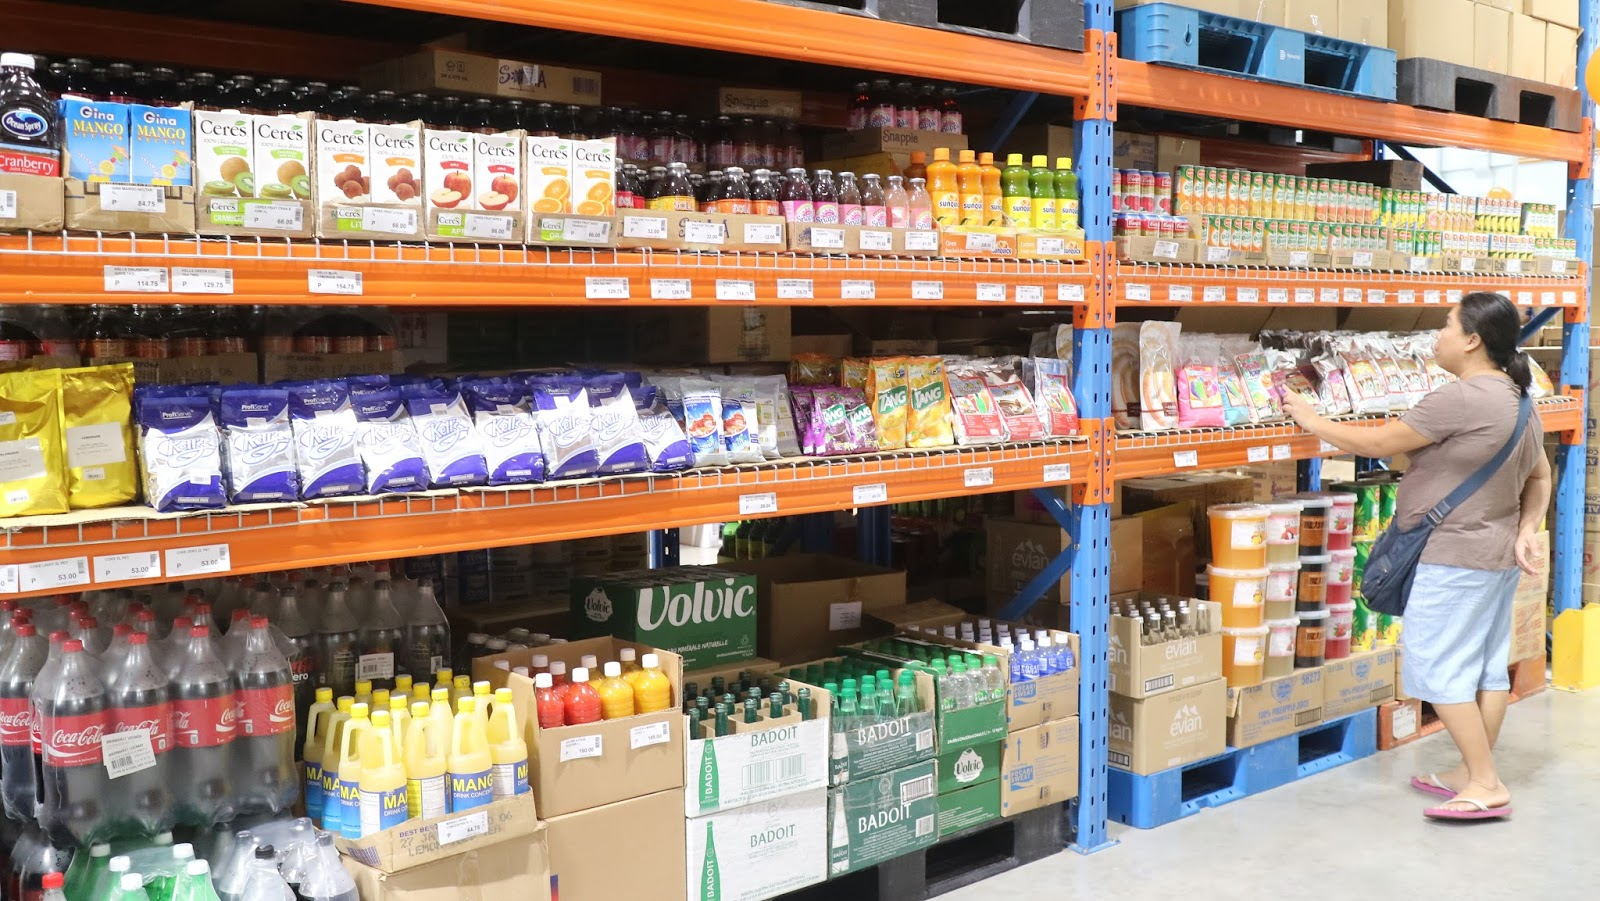 Delightful SAUCES AND CONDIMENTS U2013 Restaurant Depot Has All The Condiments To Flavor  Your Food, From Ketchups, Mayonnaise, Mustards, Soy Sauces, Fish Sauces, ...